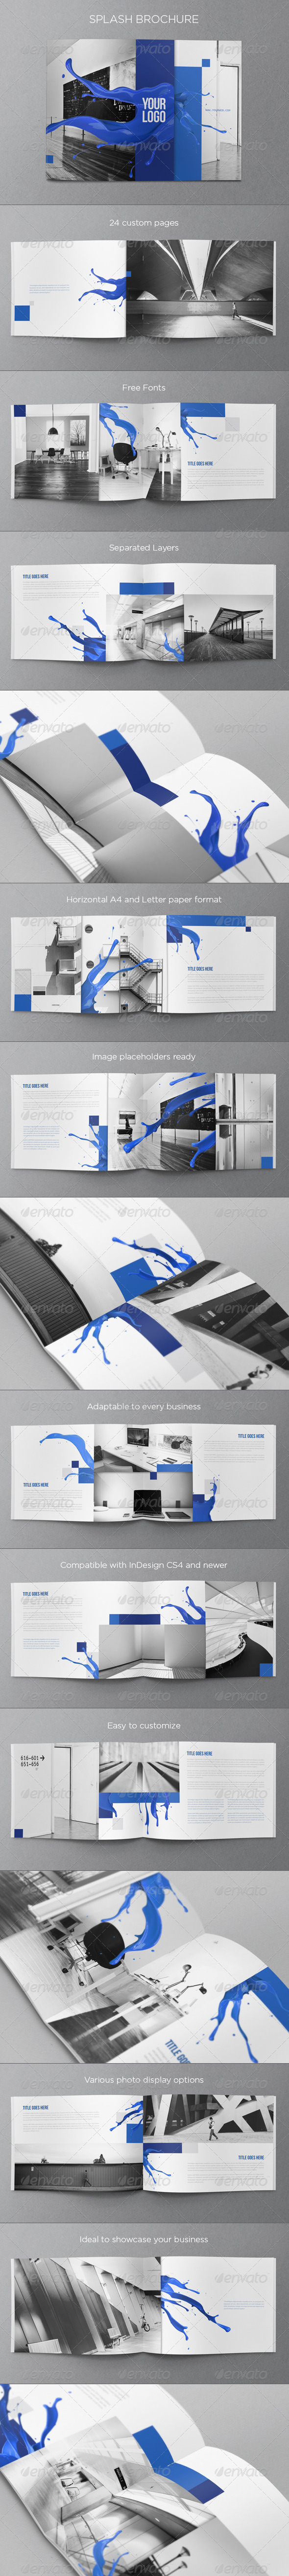 GraphicRiver Splash Brochure 6797985